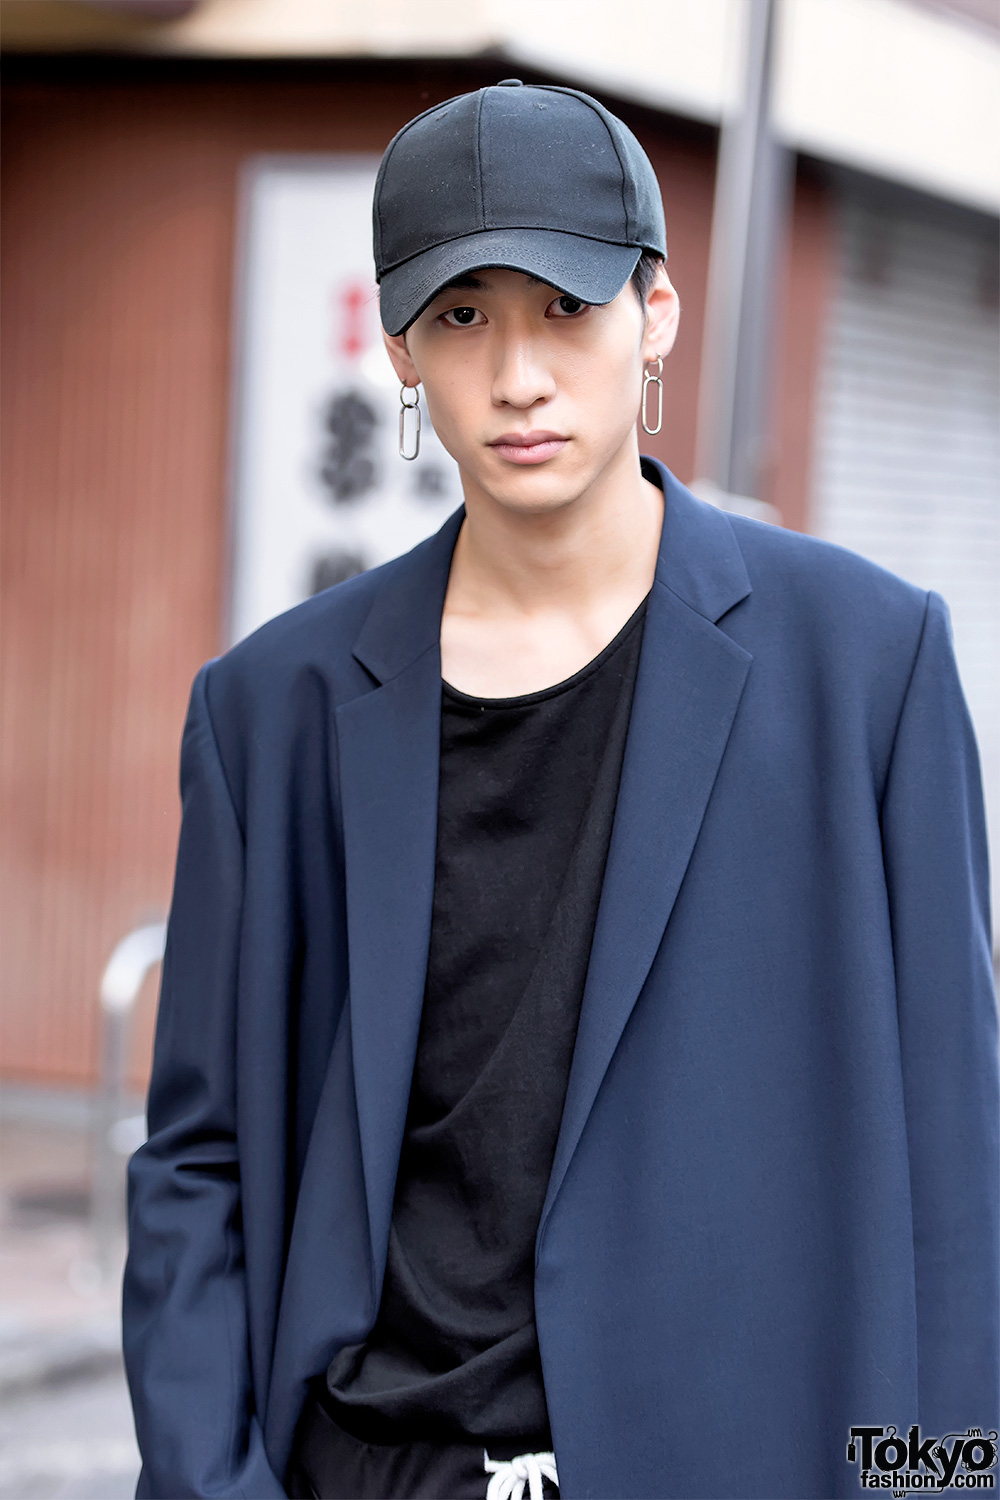 Harajuku Male Models Wearing Lad Musician, Dior Homme, And